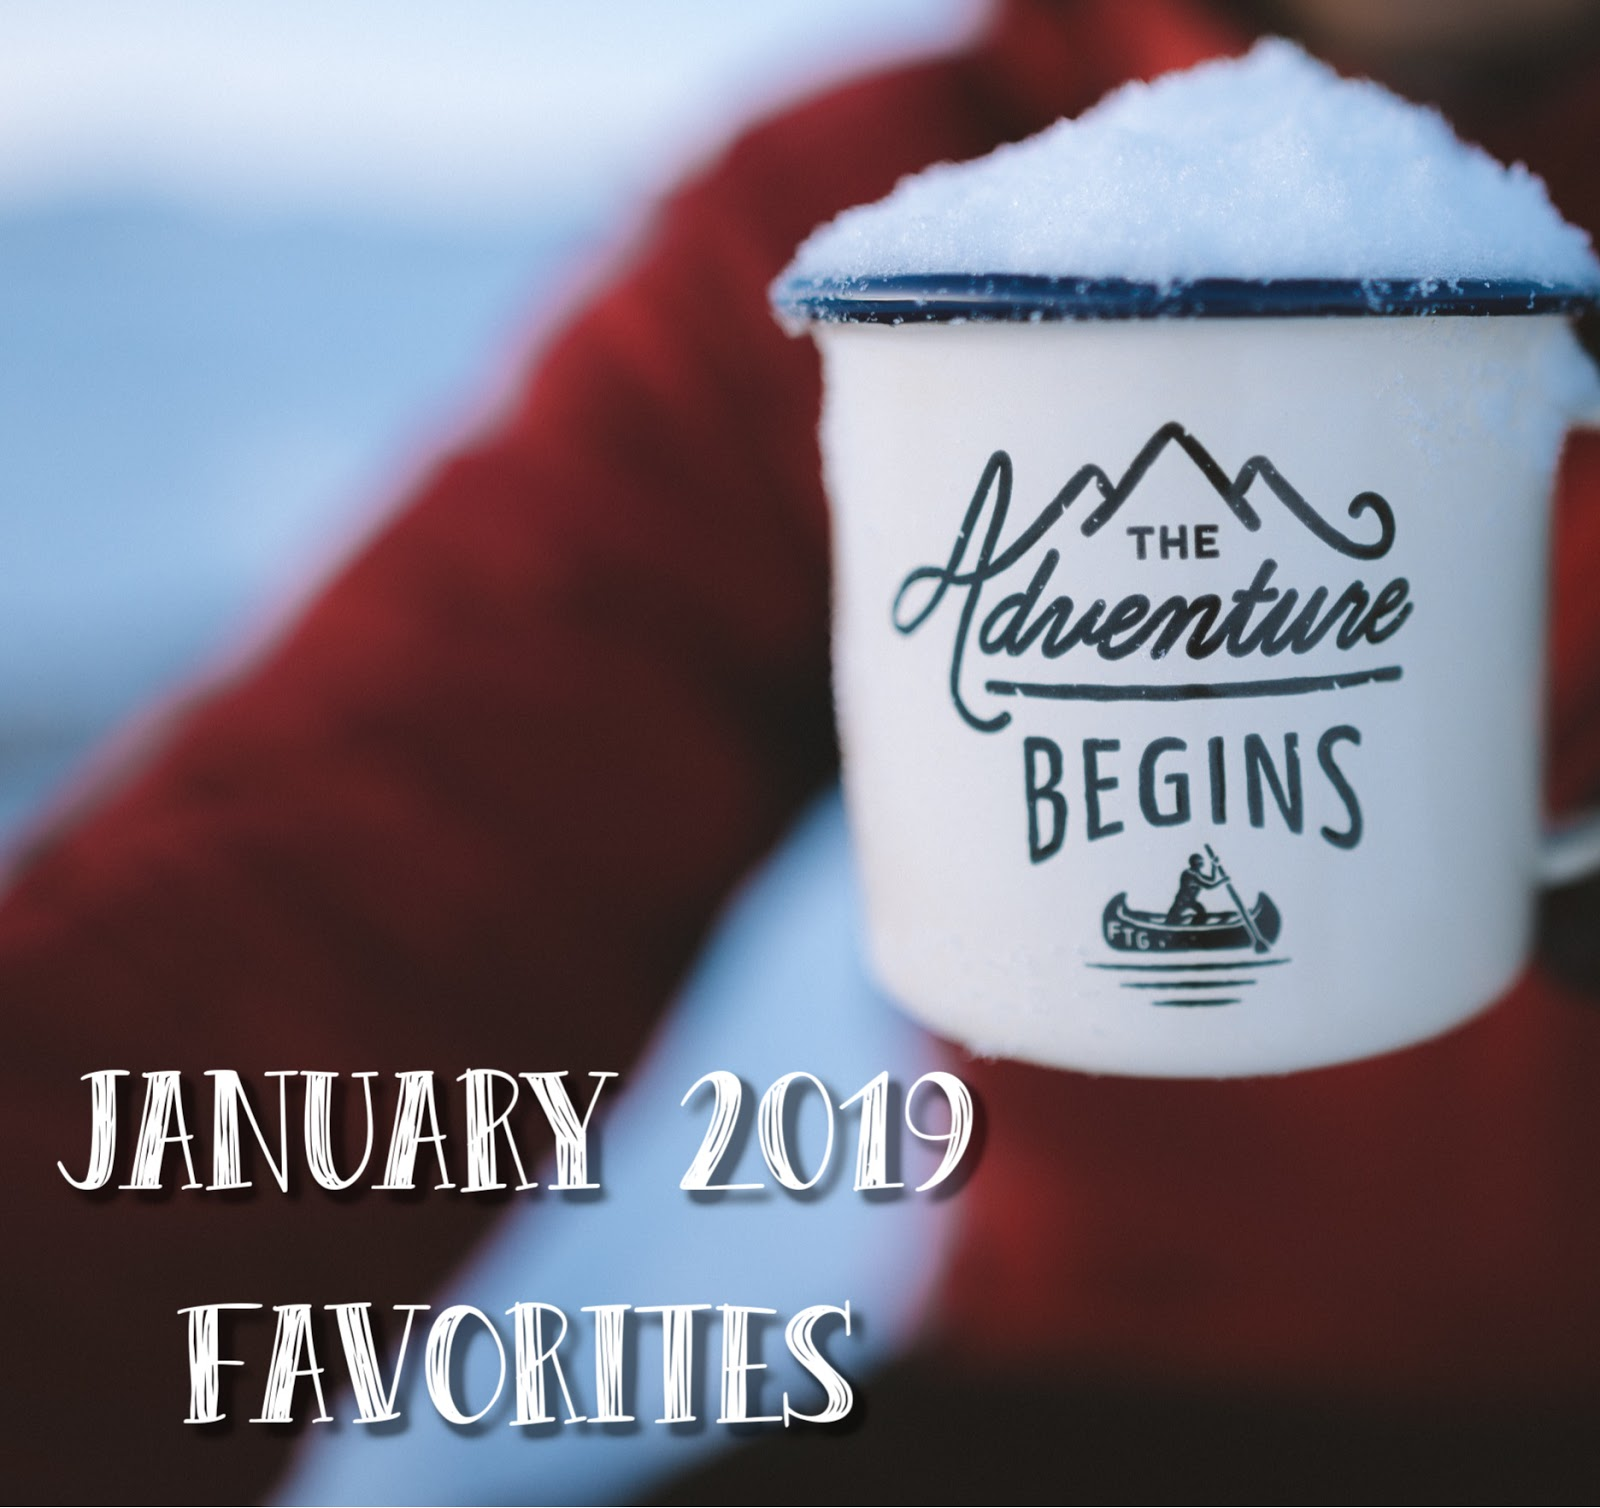 January 2019 Favorites - The Girl from Alabama